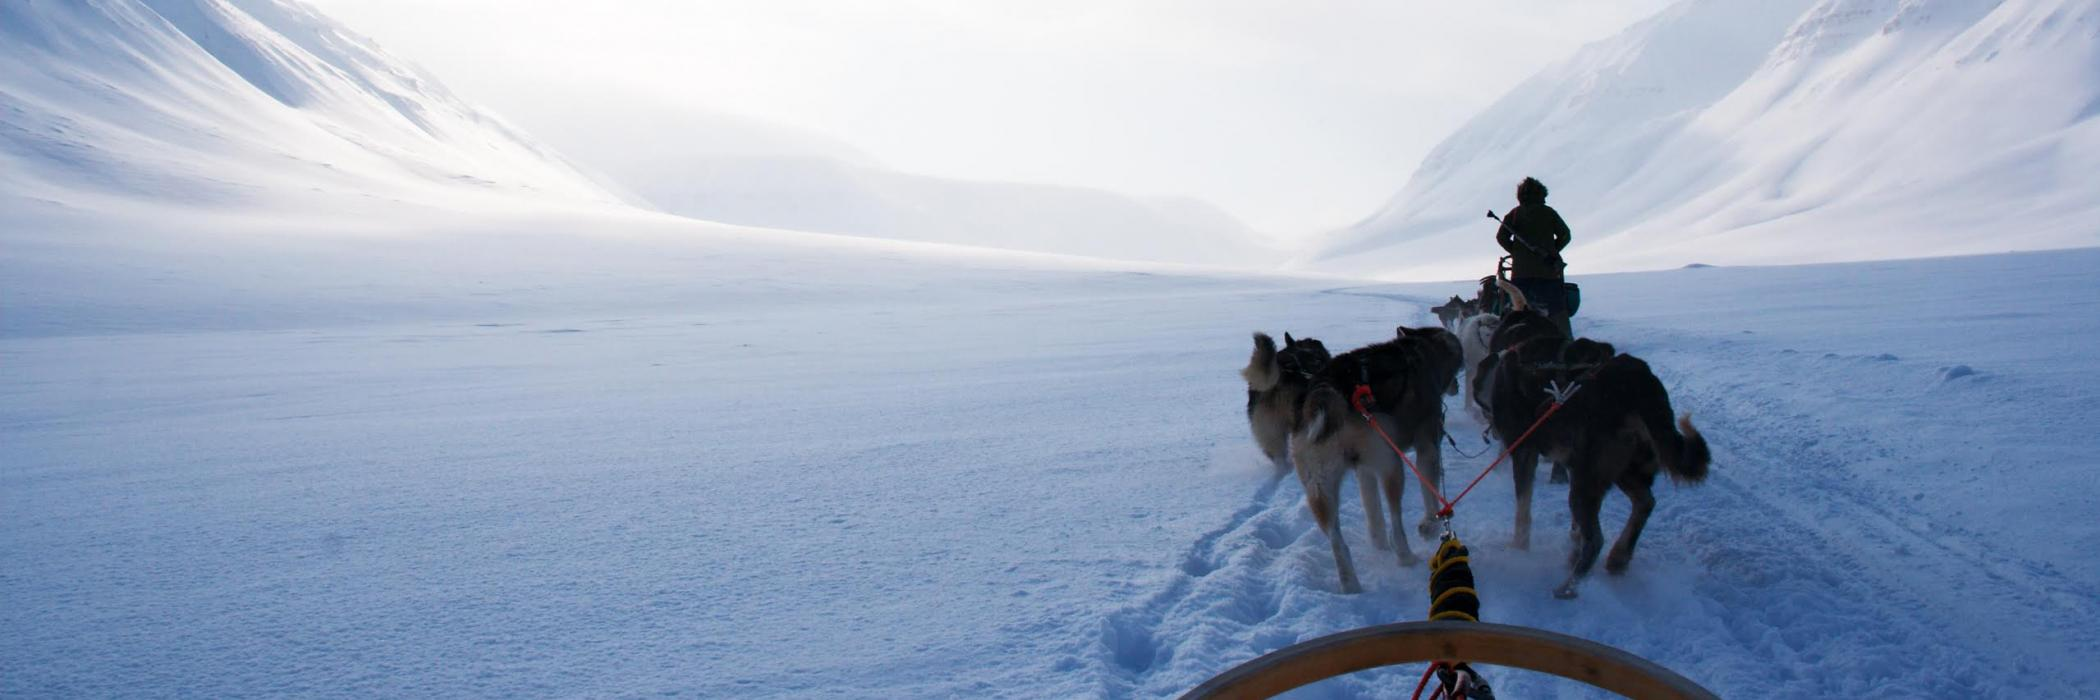 Dogsled in Svalbard, Norway.